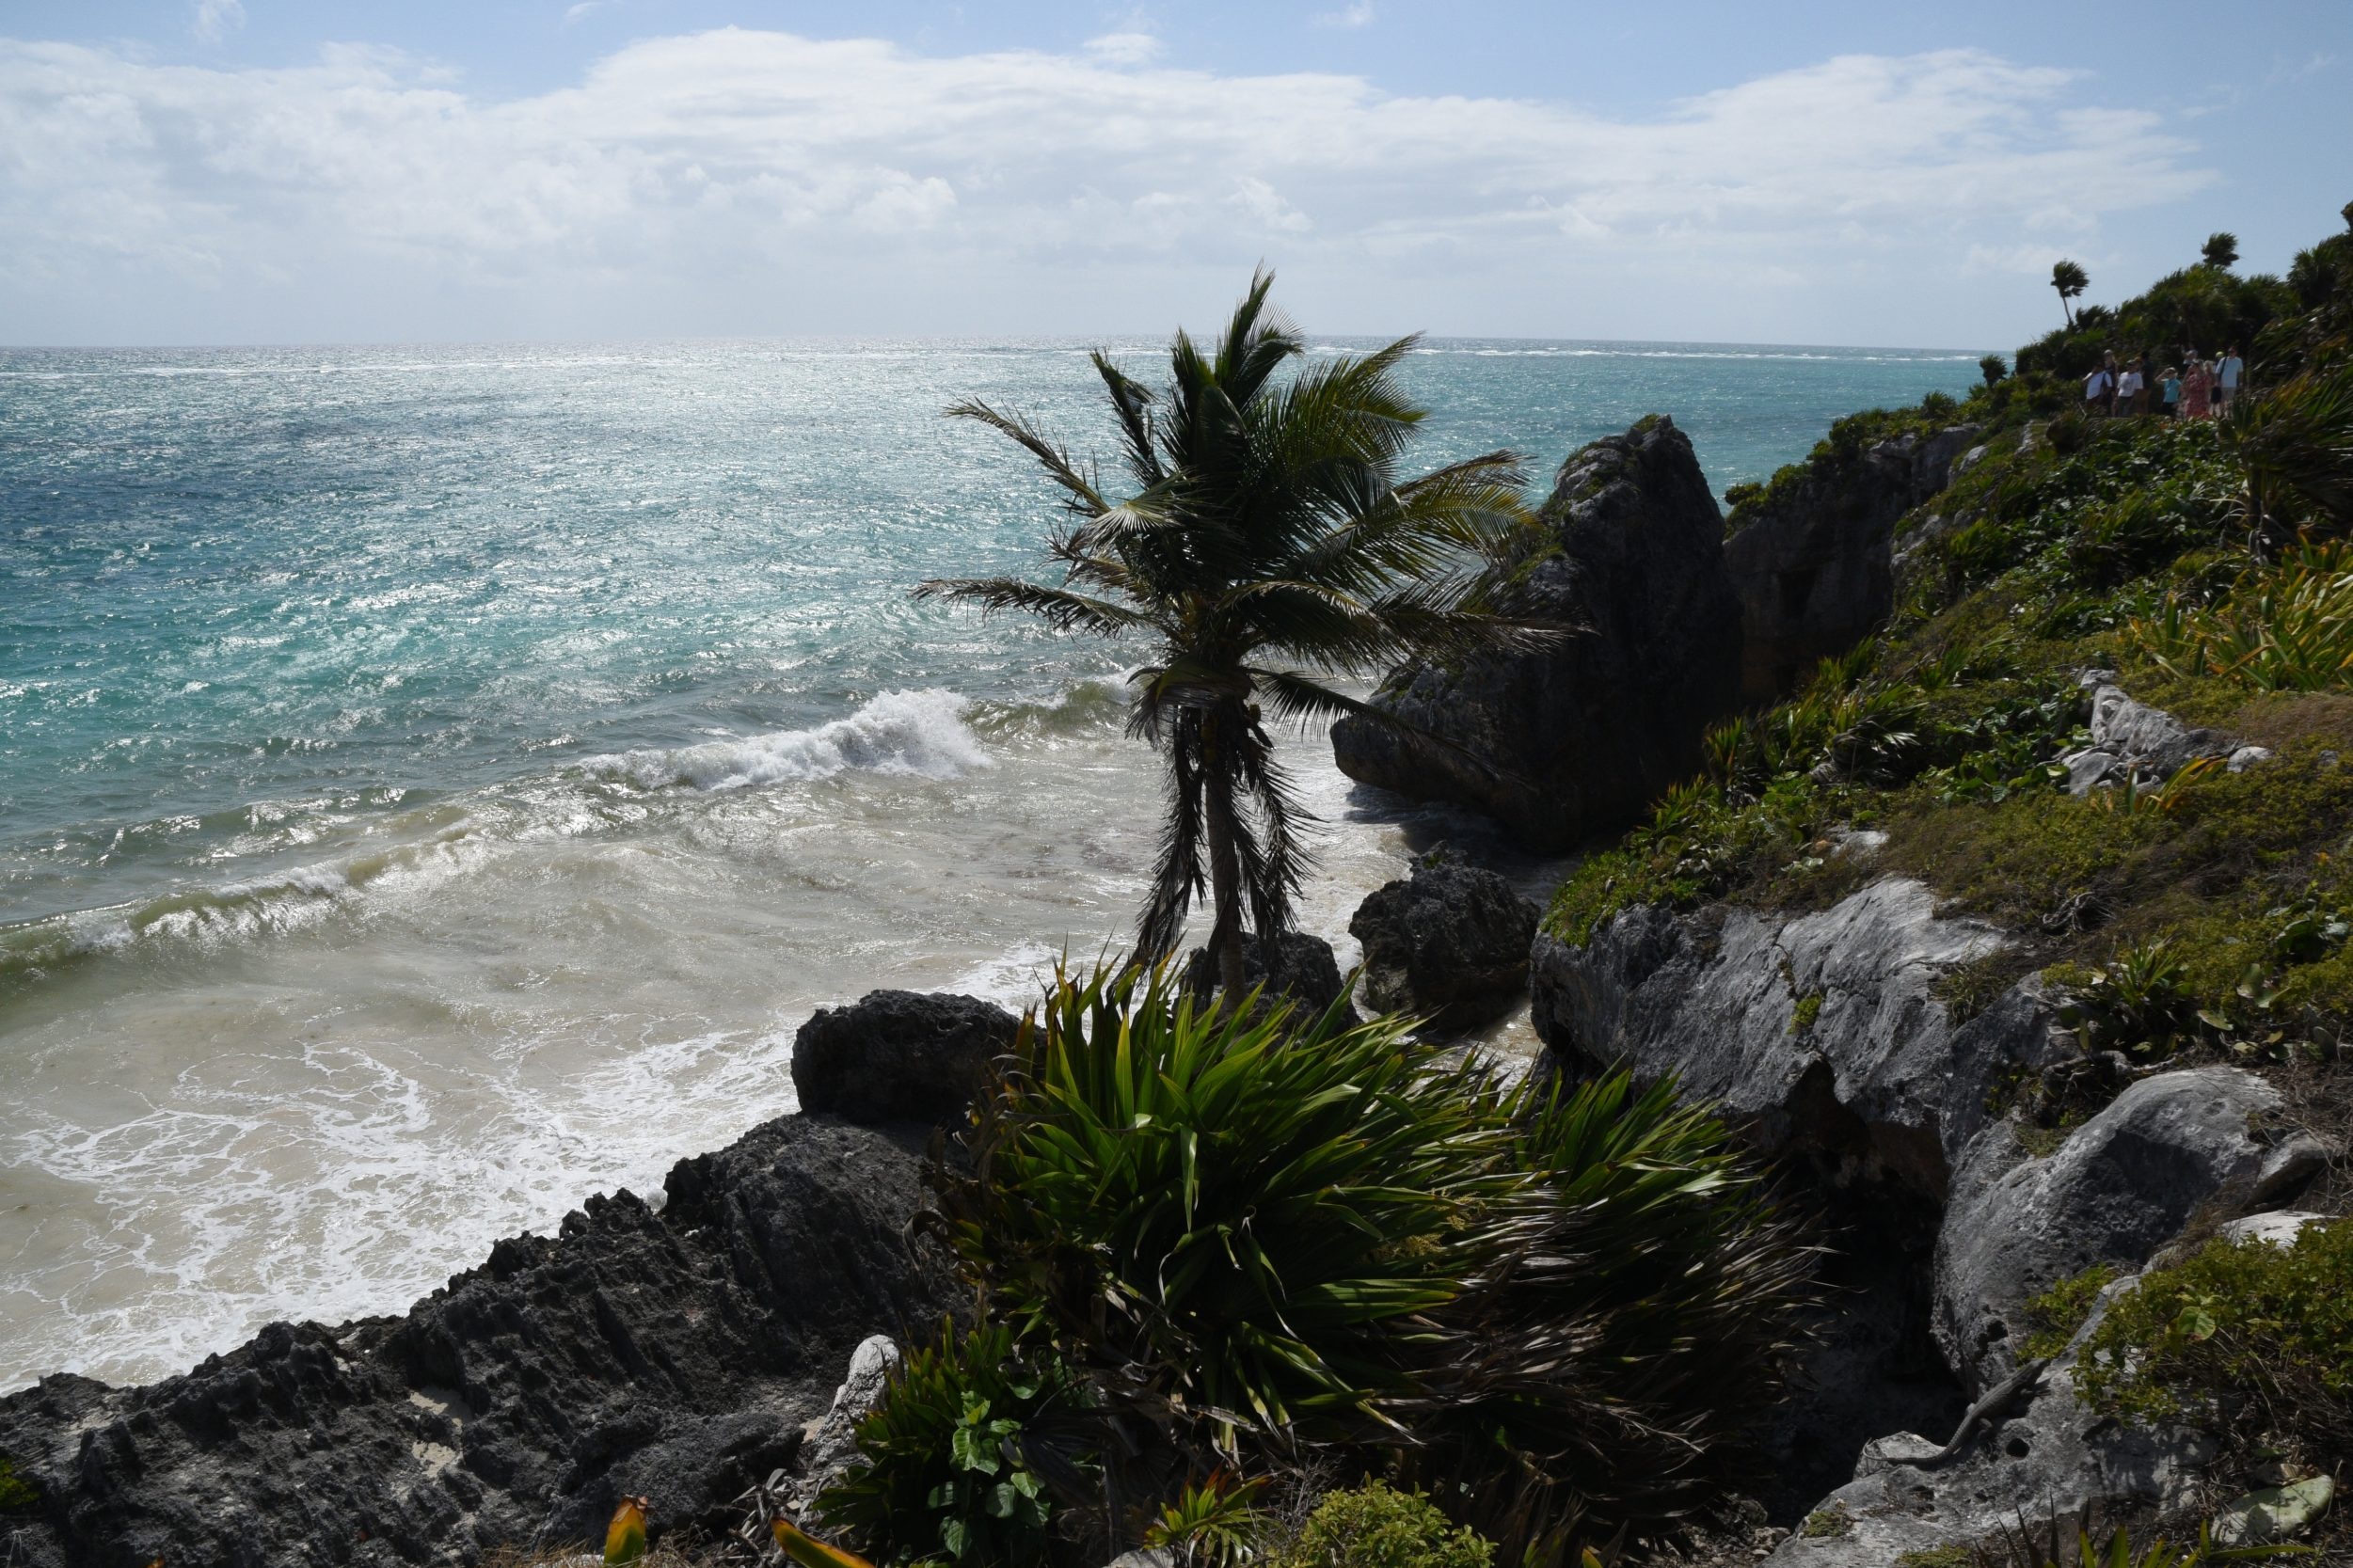 sand and surf in tulum mexico on saturday soul blog